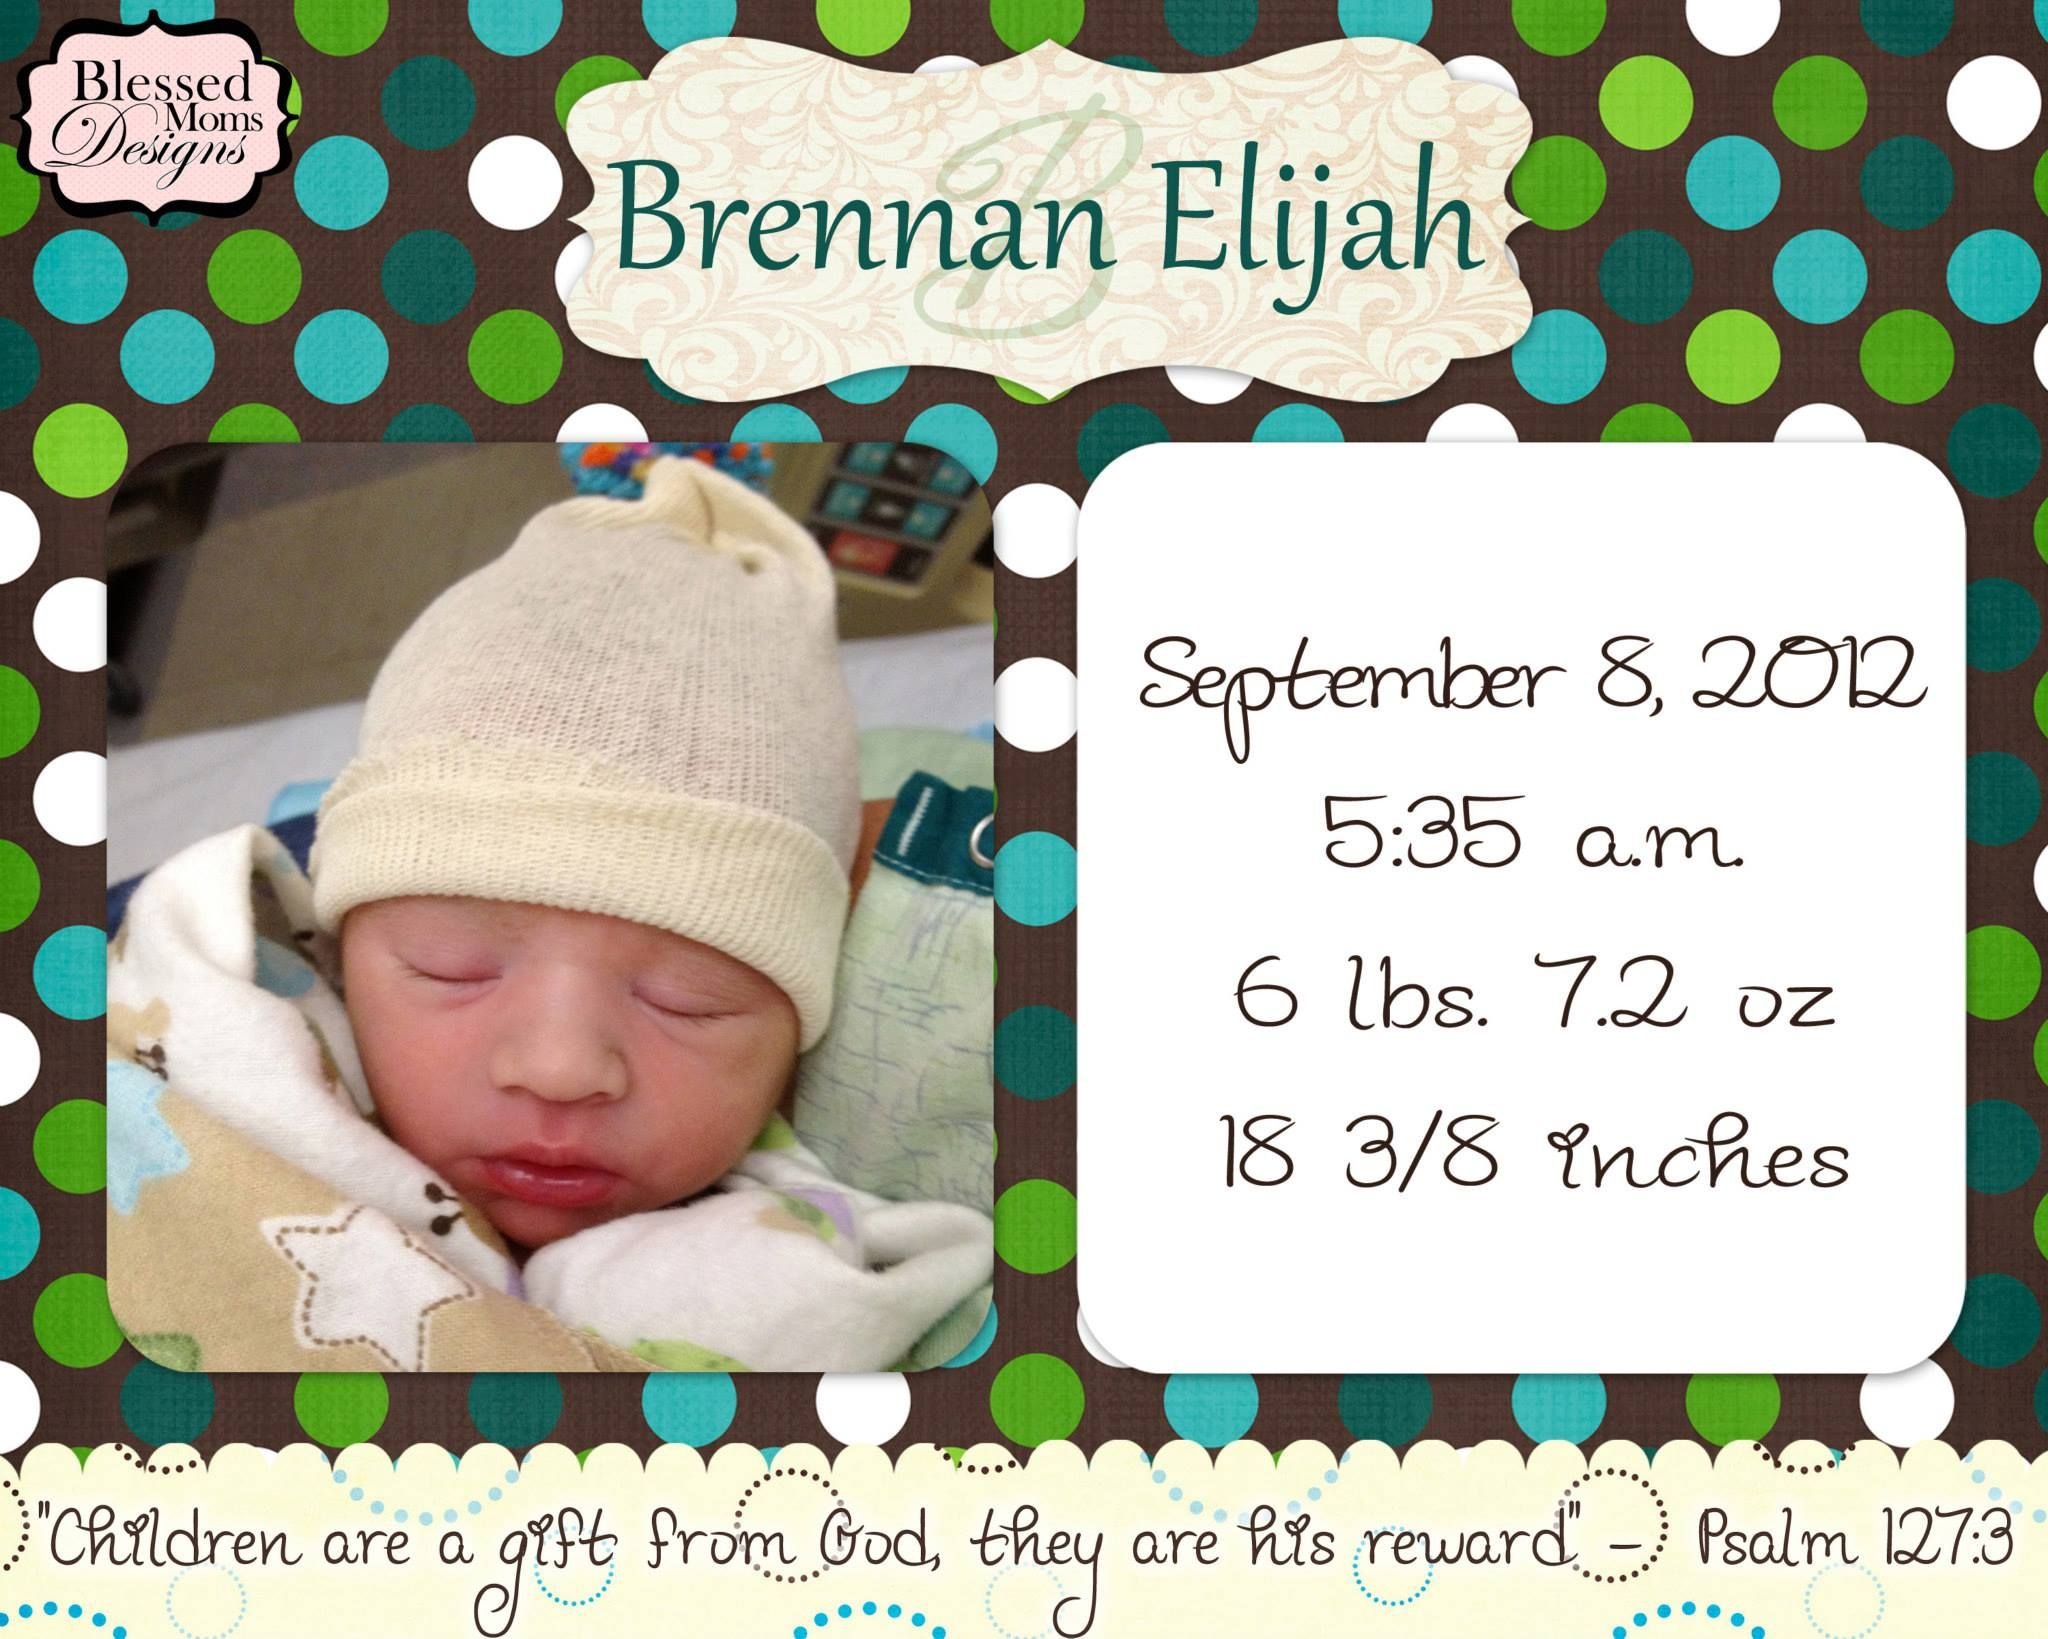 Birth Announcement Quotes Birth Announcement With Bible Quote Httpswww.facebook